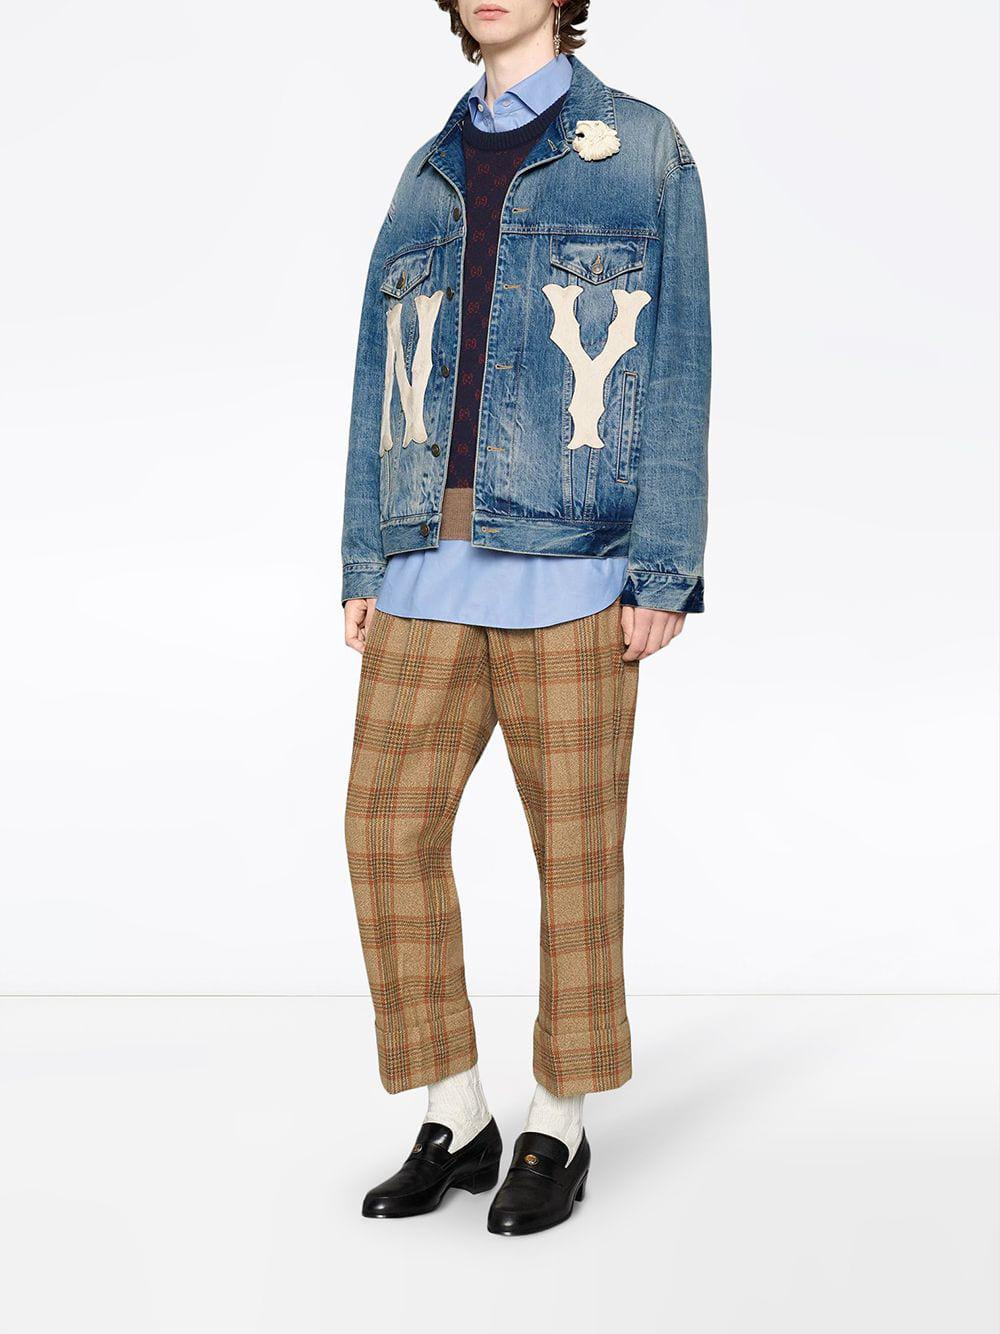 781ba6449c5 Lyst - Gucci Denim Jacket With Ny Yankeestm Patch in Blue for Men